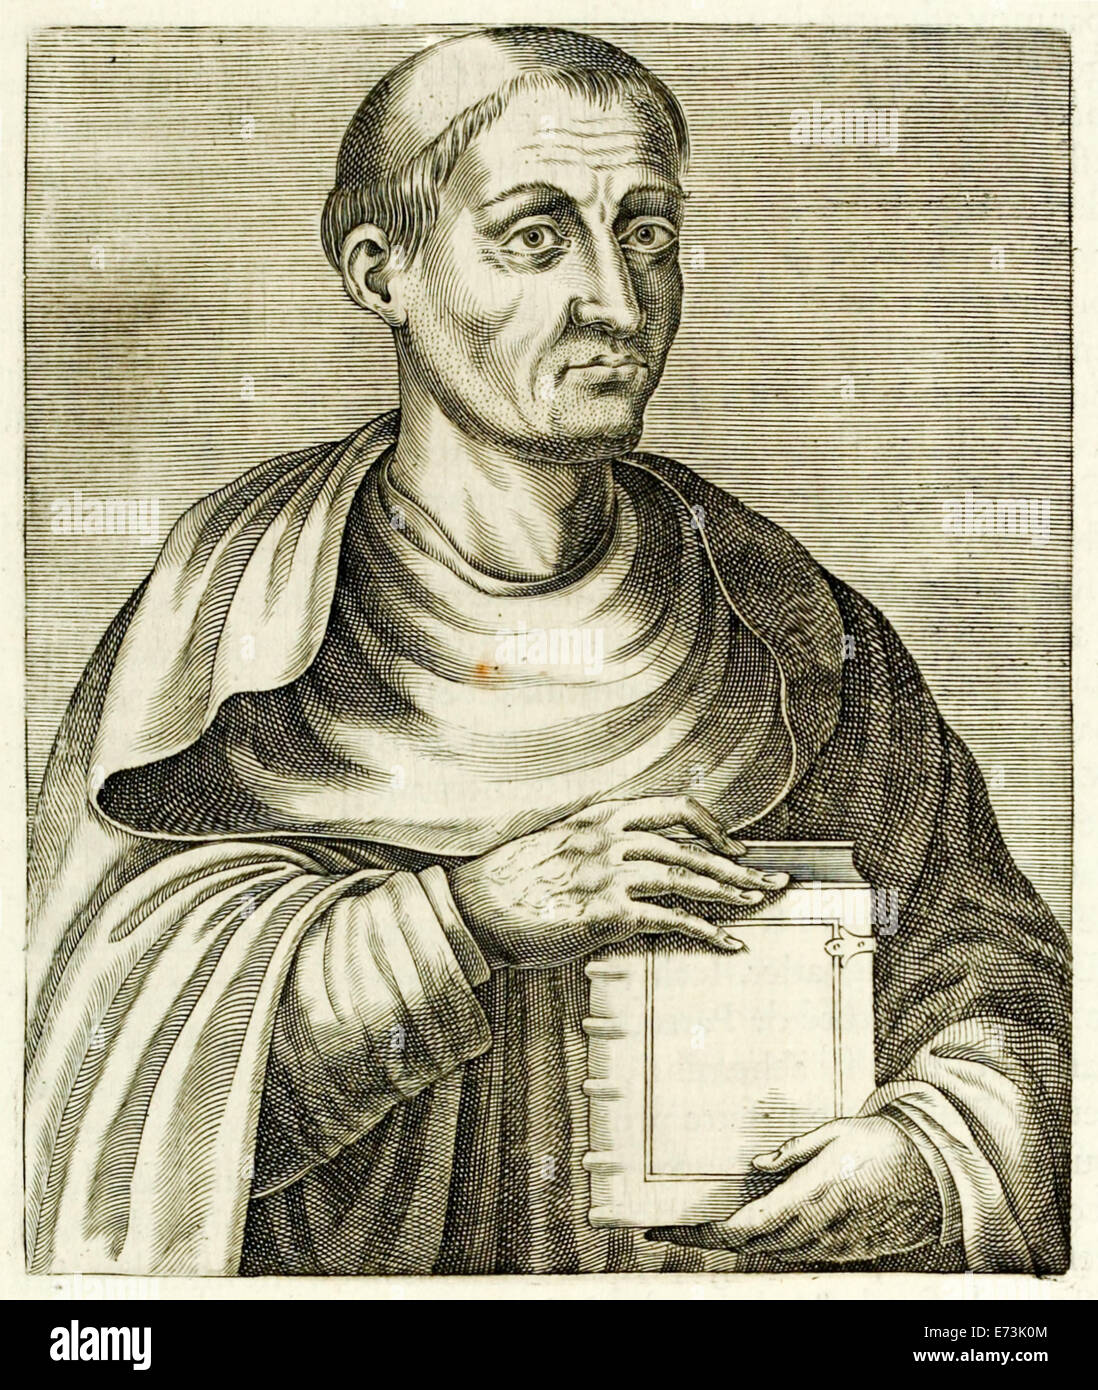 """Hugh of Saint Victor (1096-1141) from """"True Portraits…"""" by André Thévet published in 1594. See description - Stock Image"""